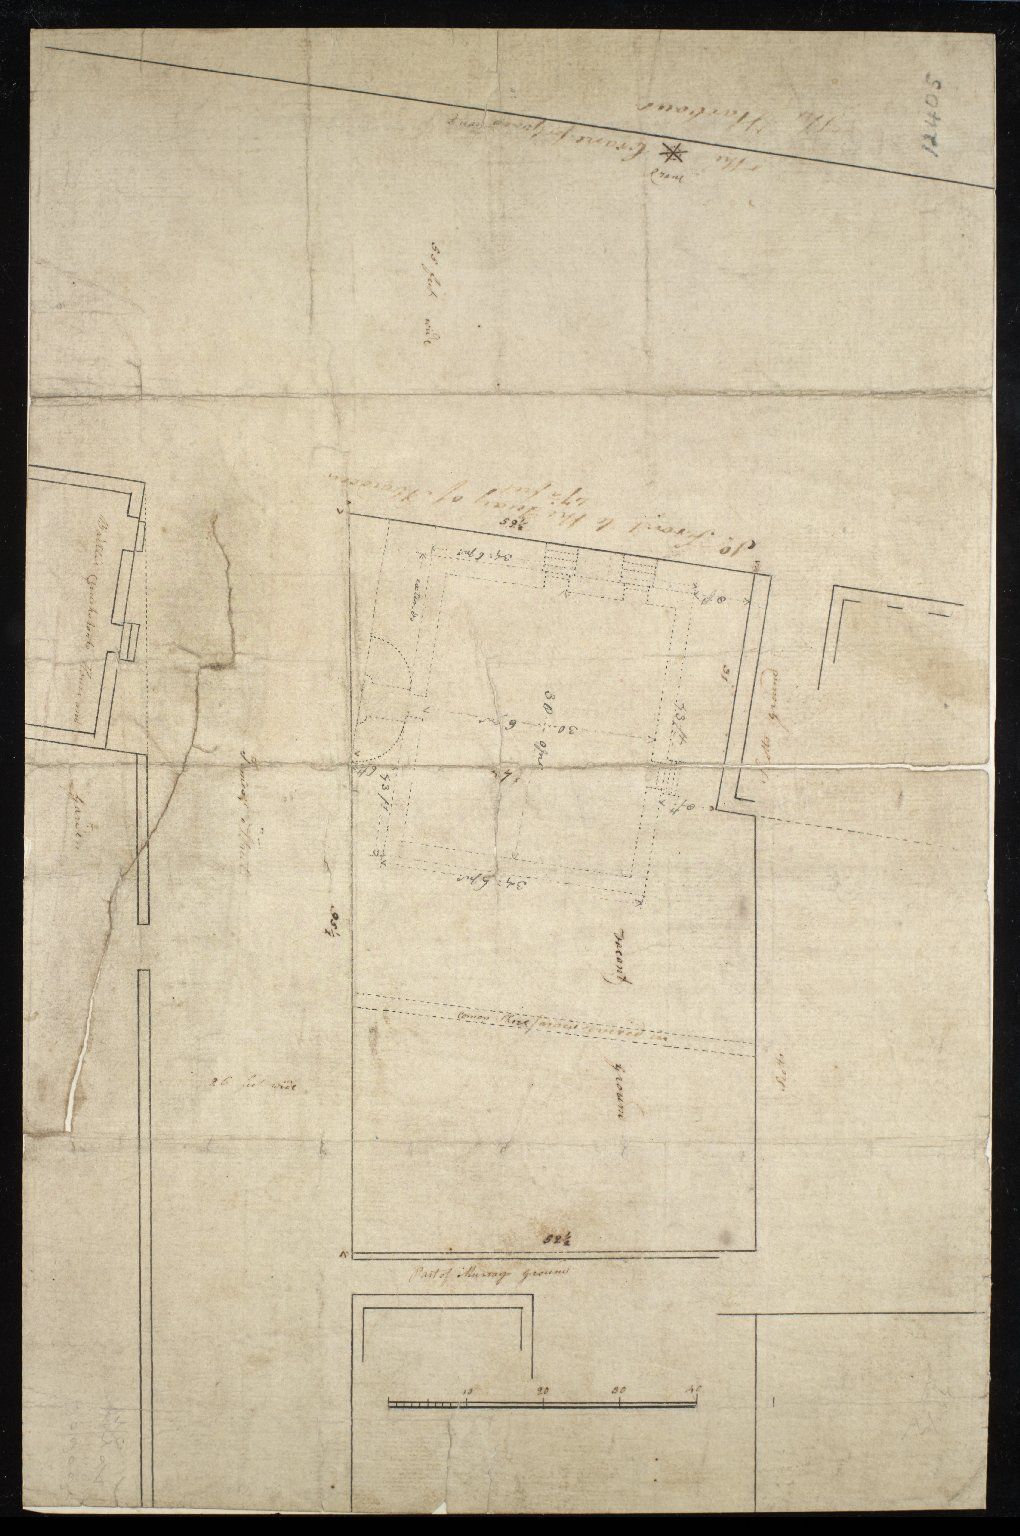 [Plan of vacant ground on James Street] [1 of 1]